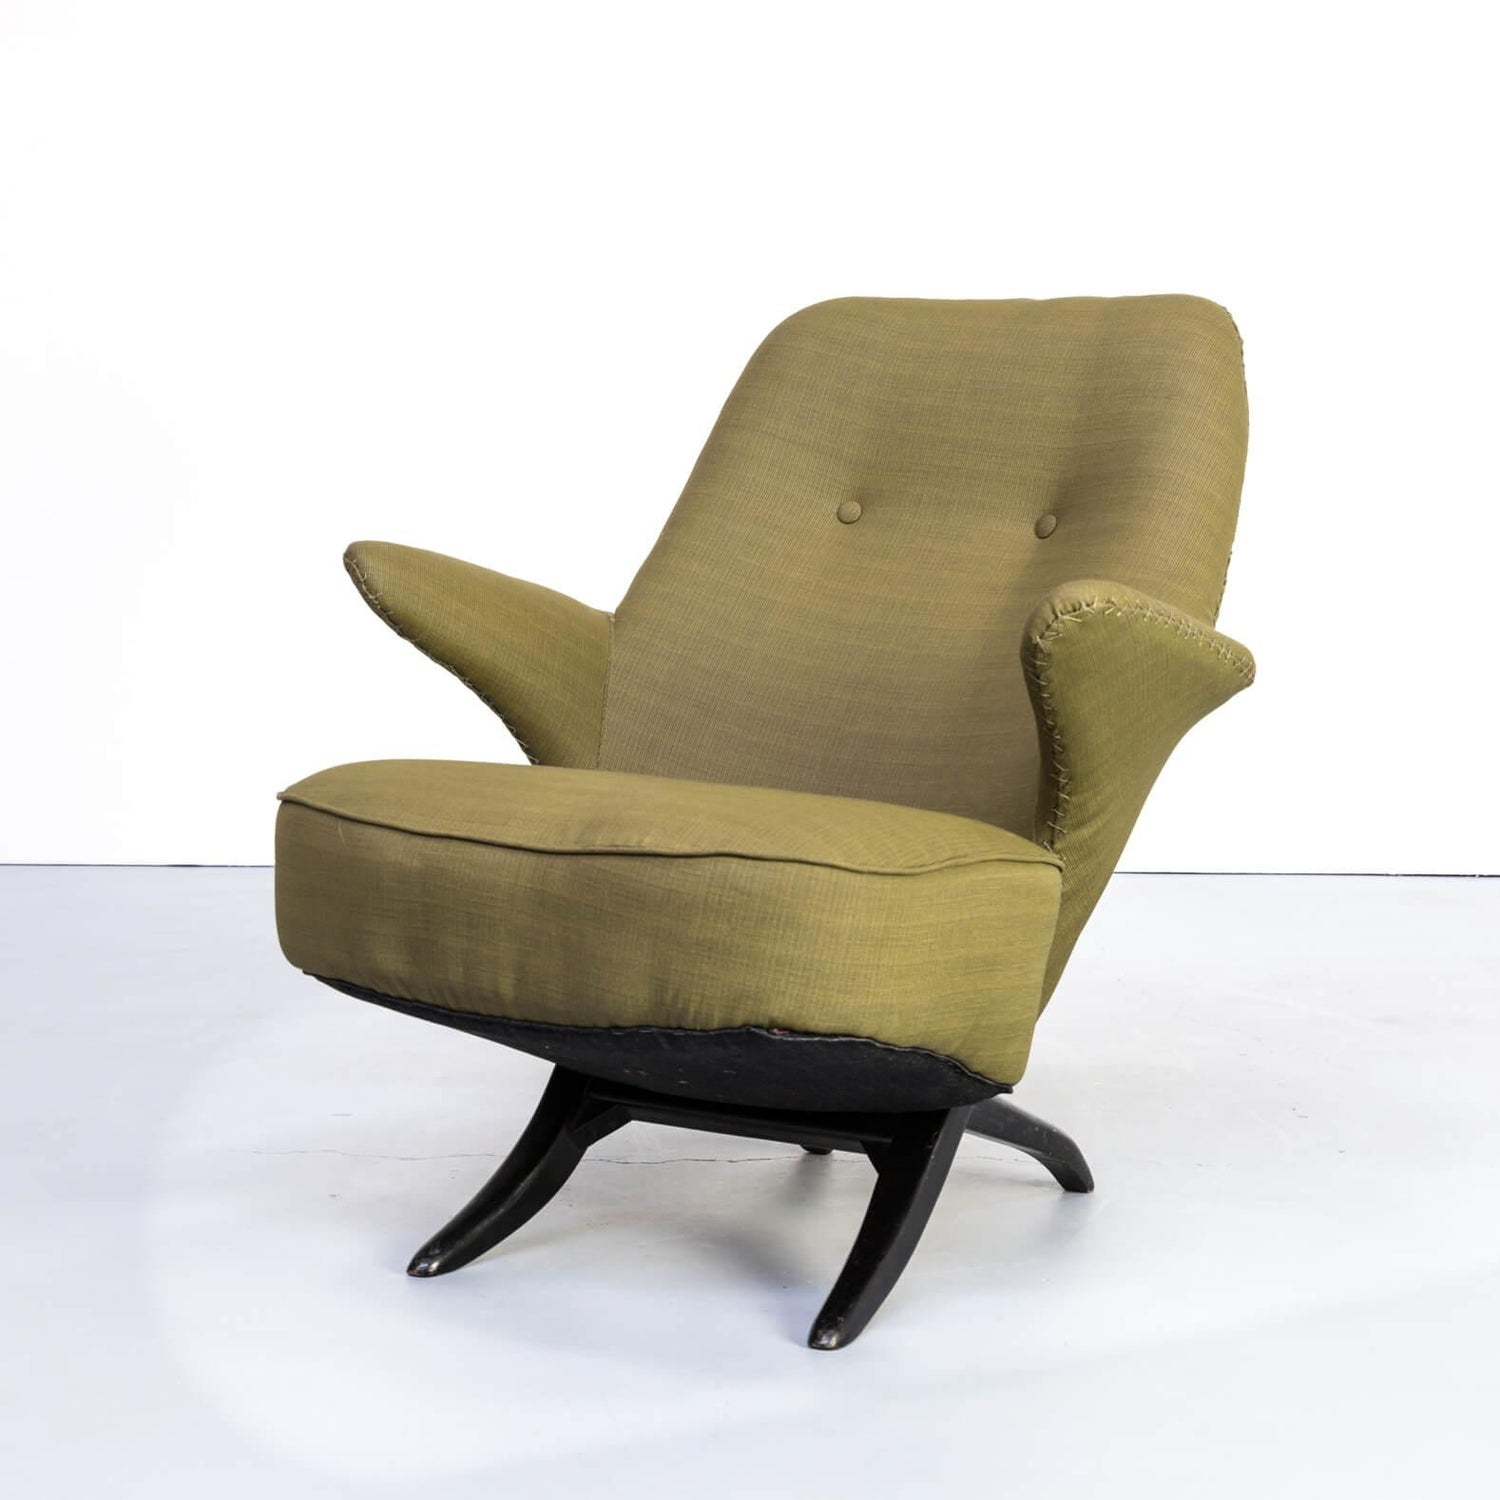 Retro Design Fauteuil.1950s Theo Ruth Pinguin Lounge Fauteuil For Artifort For Sale At